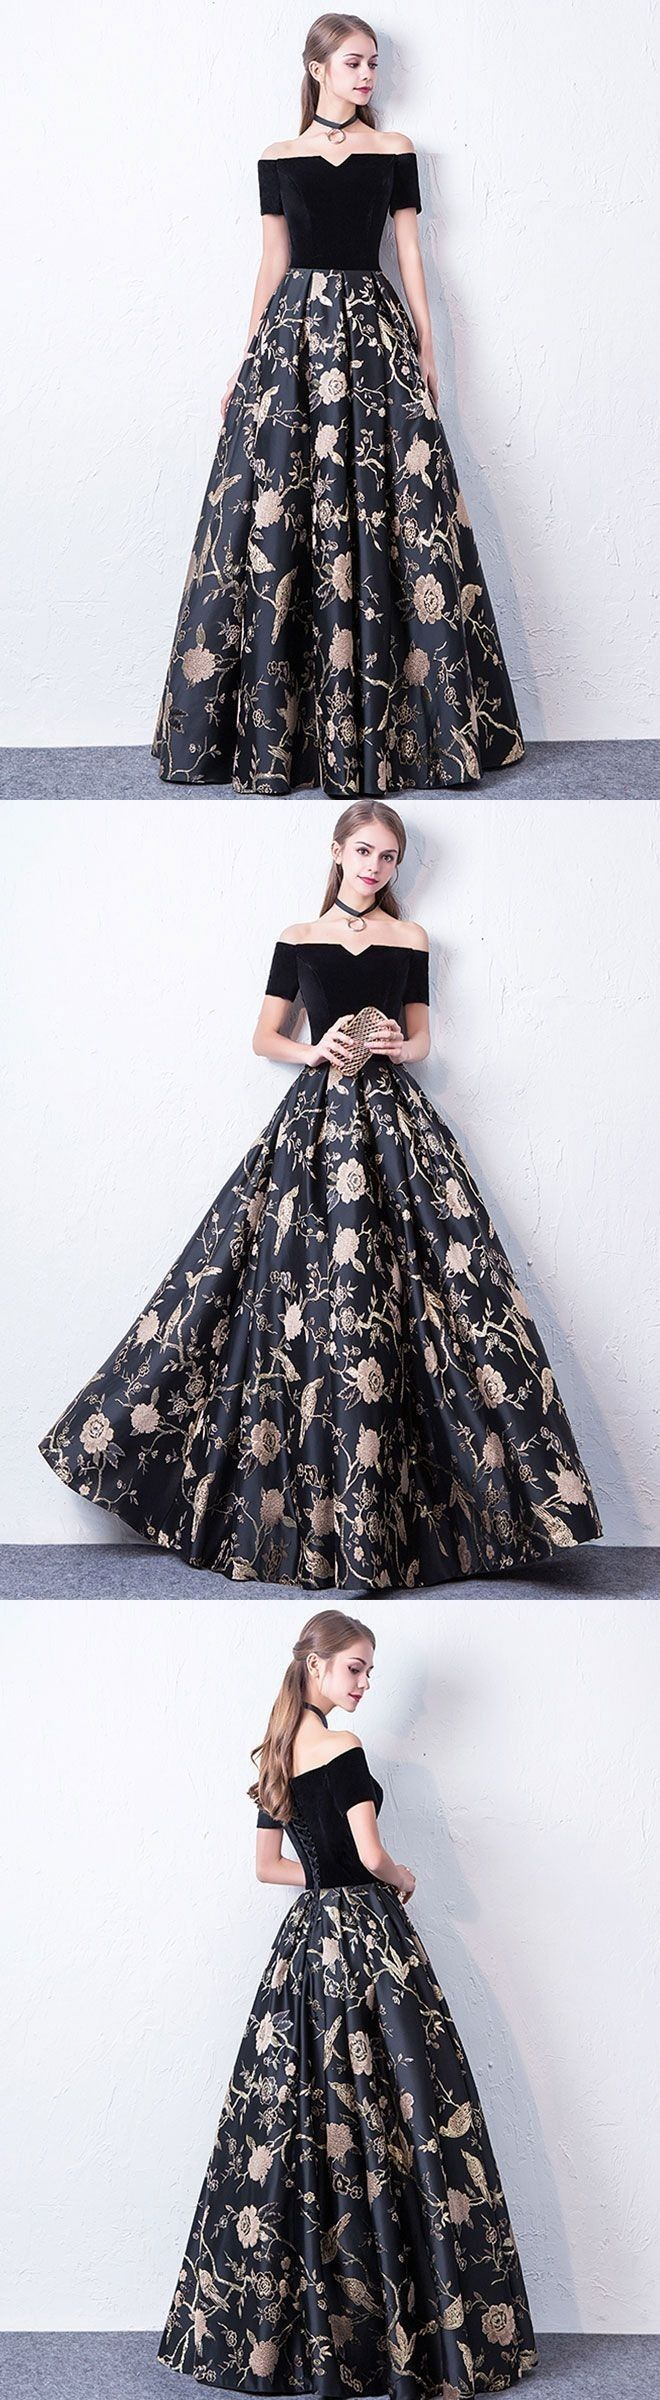 Black floral gown dresses prom partydress eveningwear prom